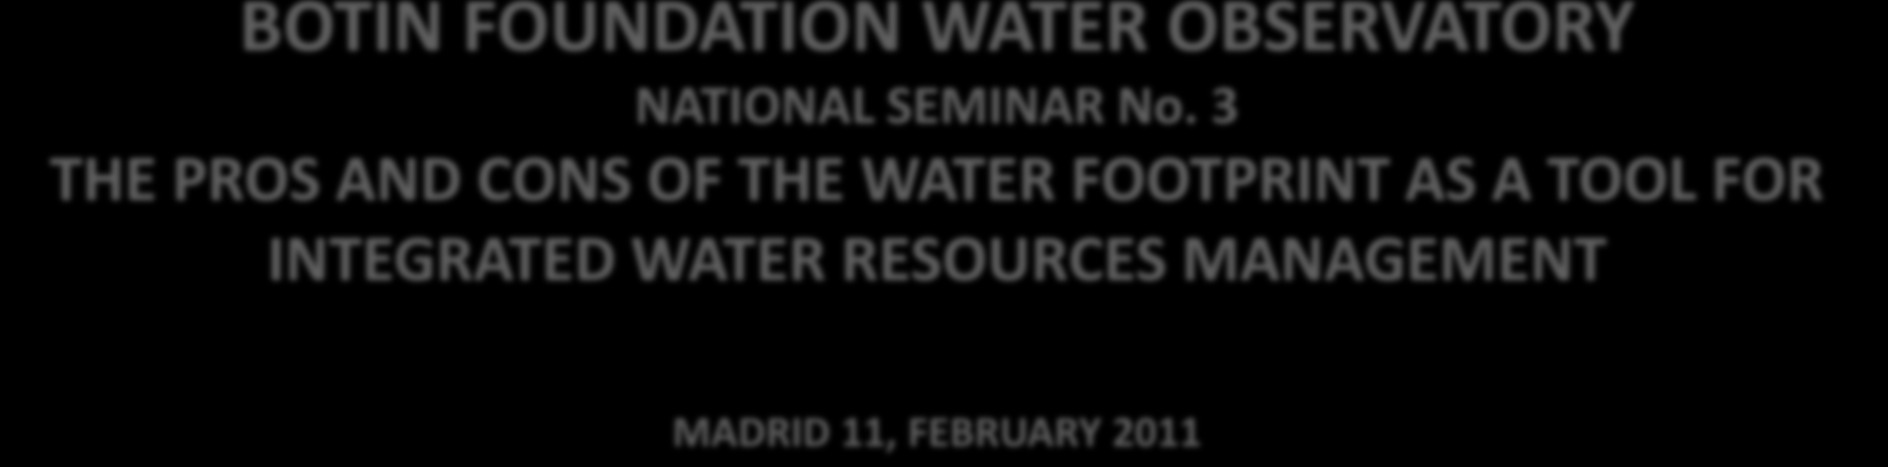 BOTIN FOUNDATION WATER OBSERVATORY NATIONAL SEMINAR No.